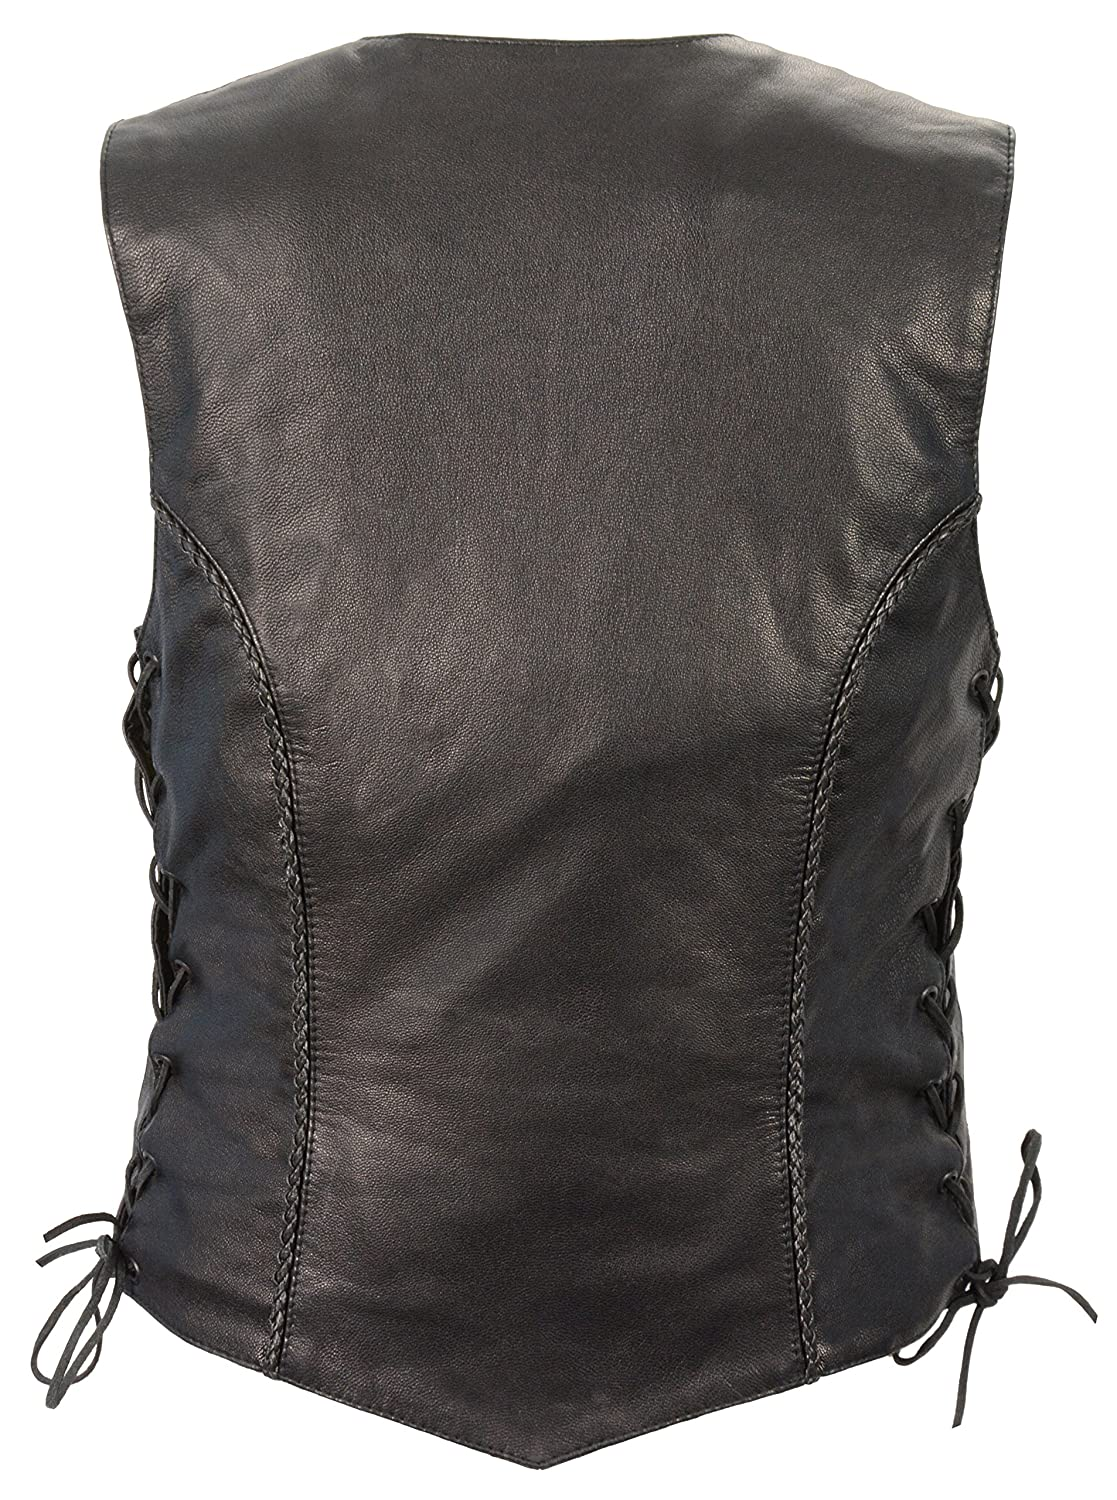 S Front Snaps, Braided O Milwaukee Leather Womens Braided Vest Black, Medium